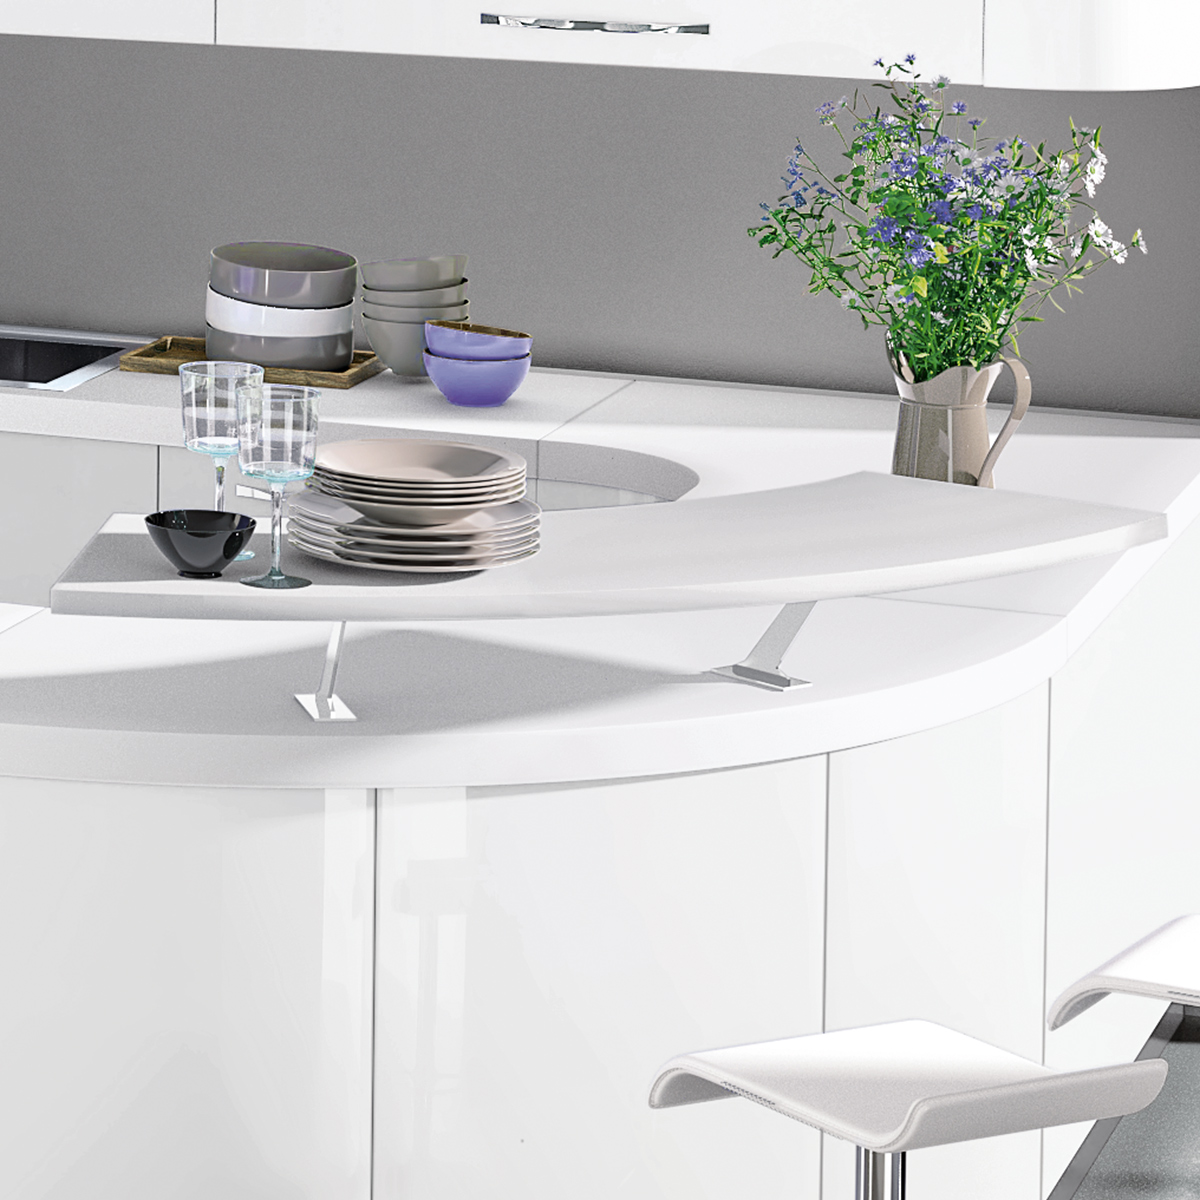 melody - Cucine Melody